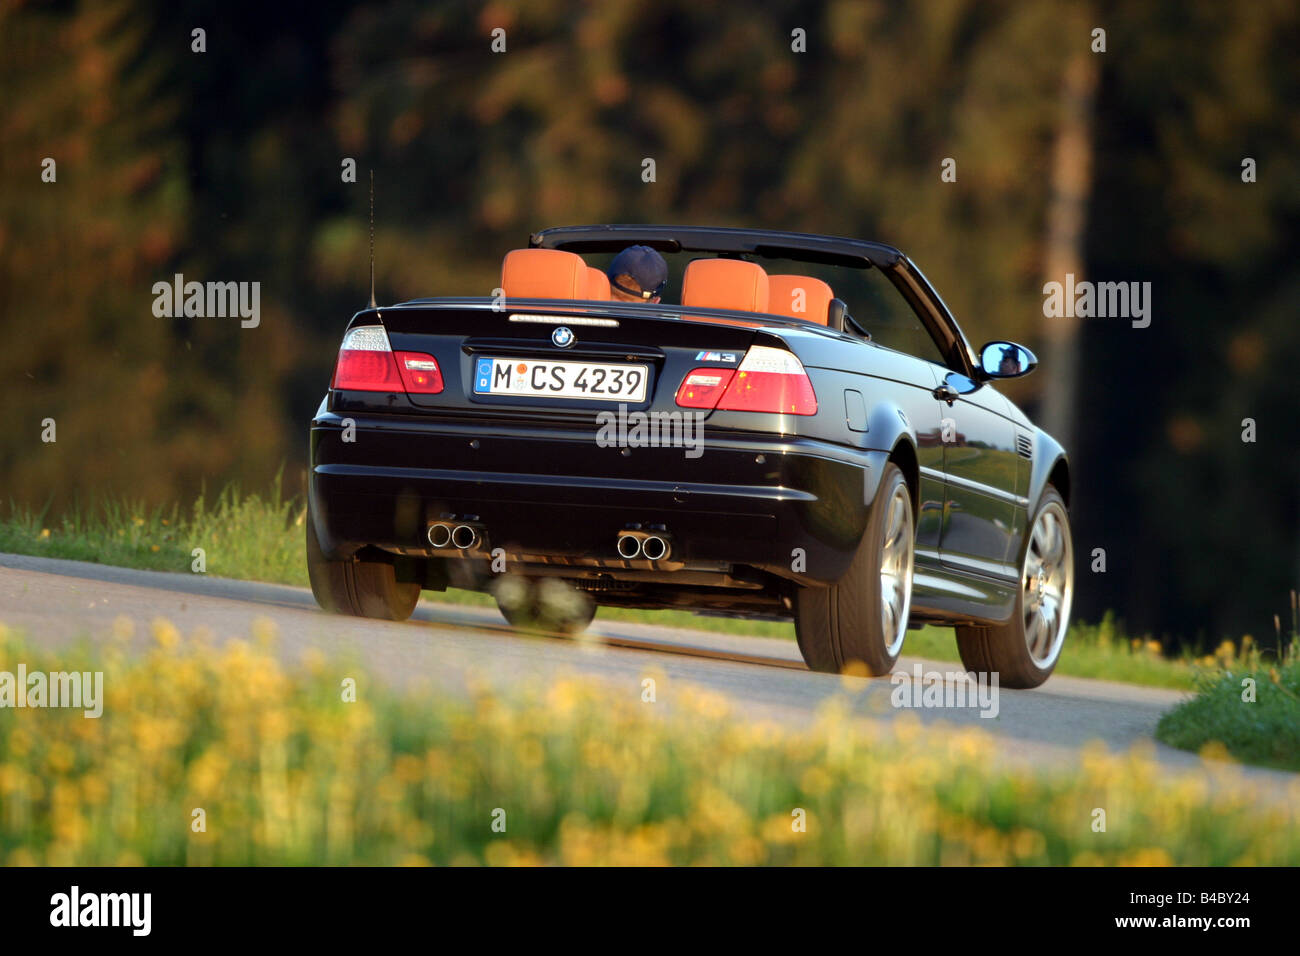 Car Bmw M3 Convertible Model Year 2003 Black Open Top Driving